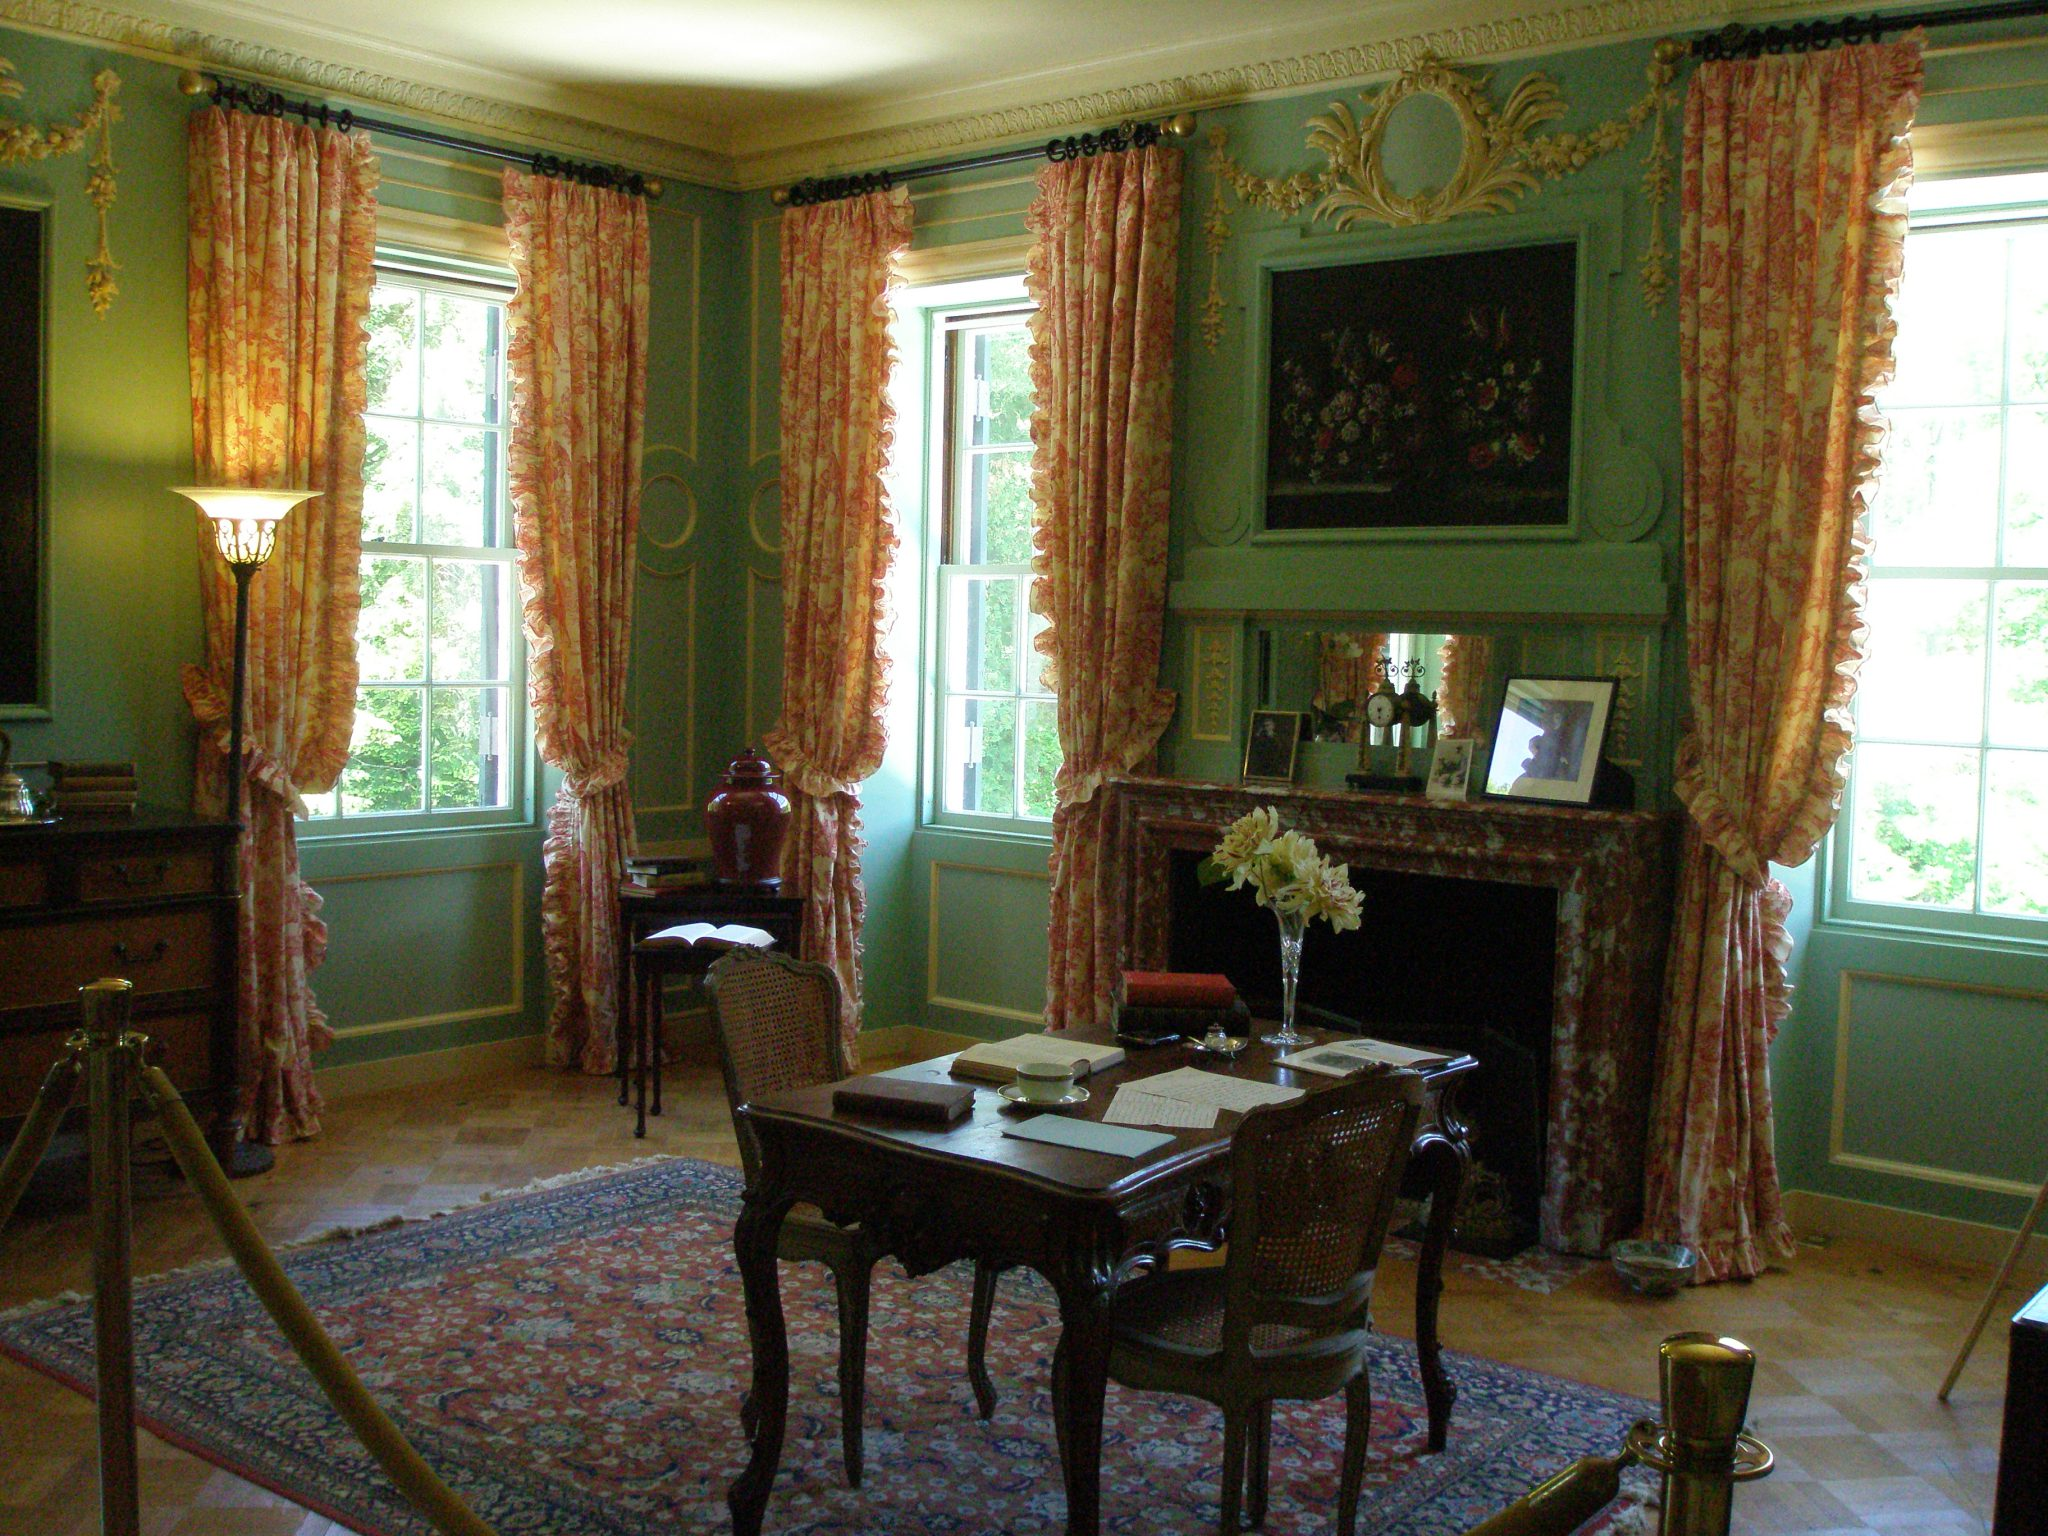 Edith Wharton's Boudoir--or Sitting Room, which is on the Bedroom Floor. The Boudoir was designed by Odgen Codman, Jr., and is the most elaborately-outfitted room on the Bedroom Floor.